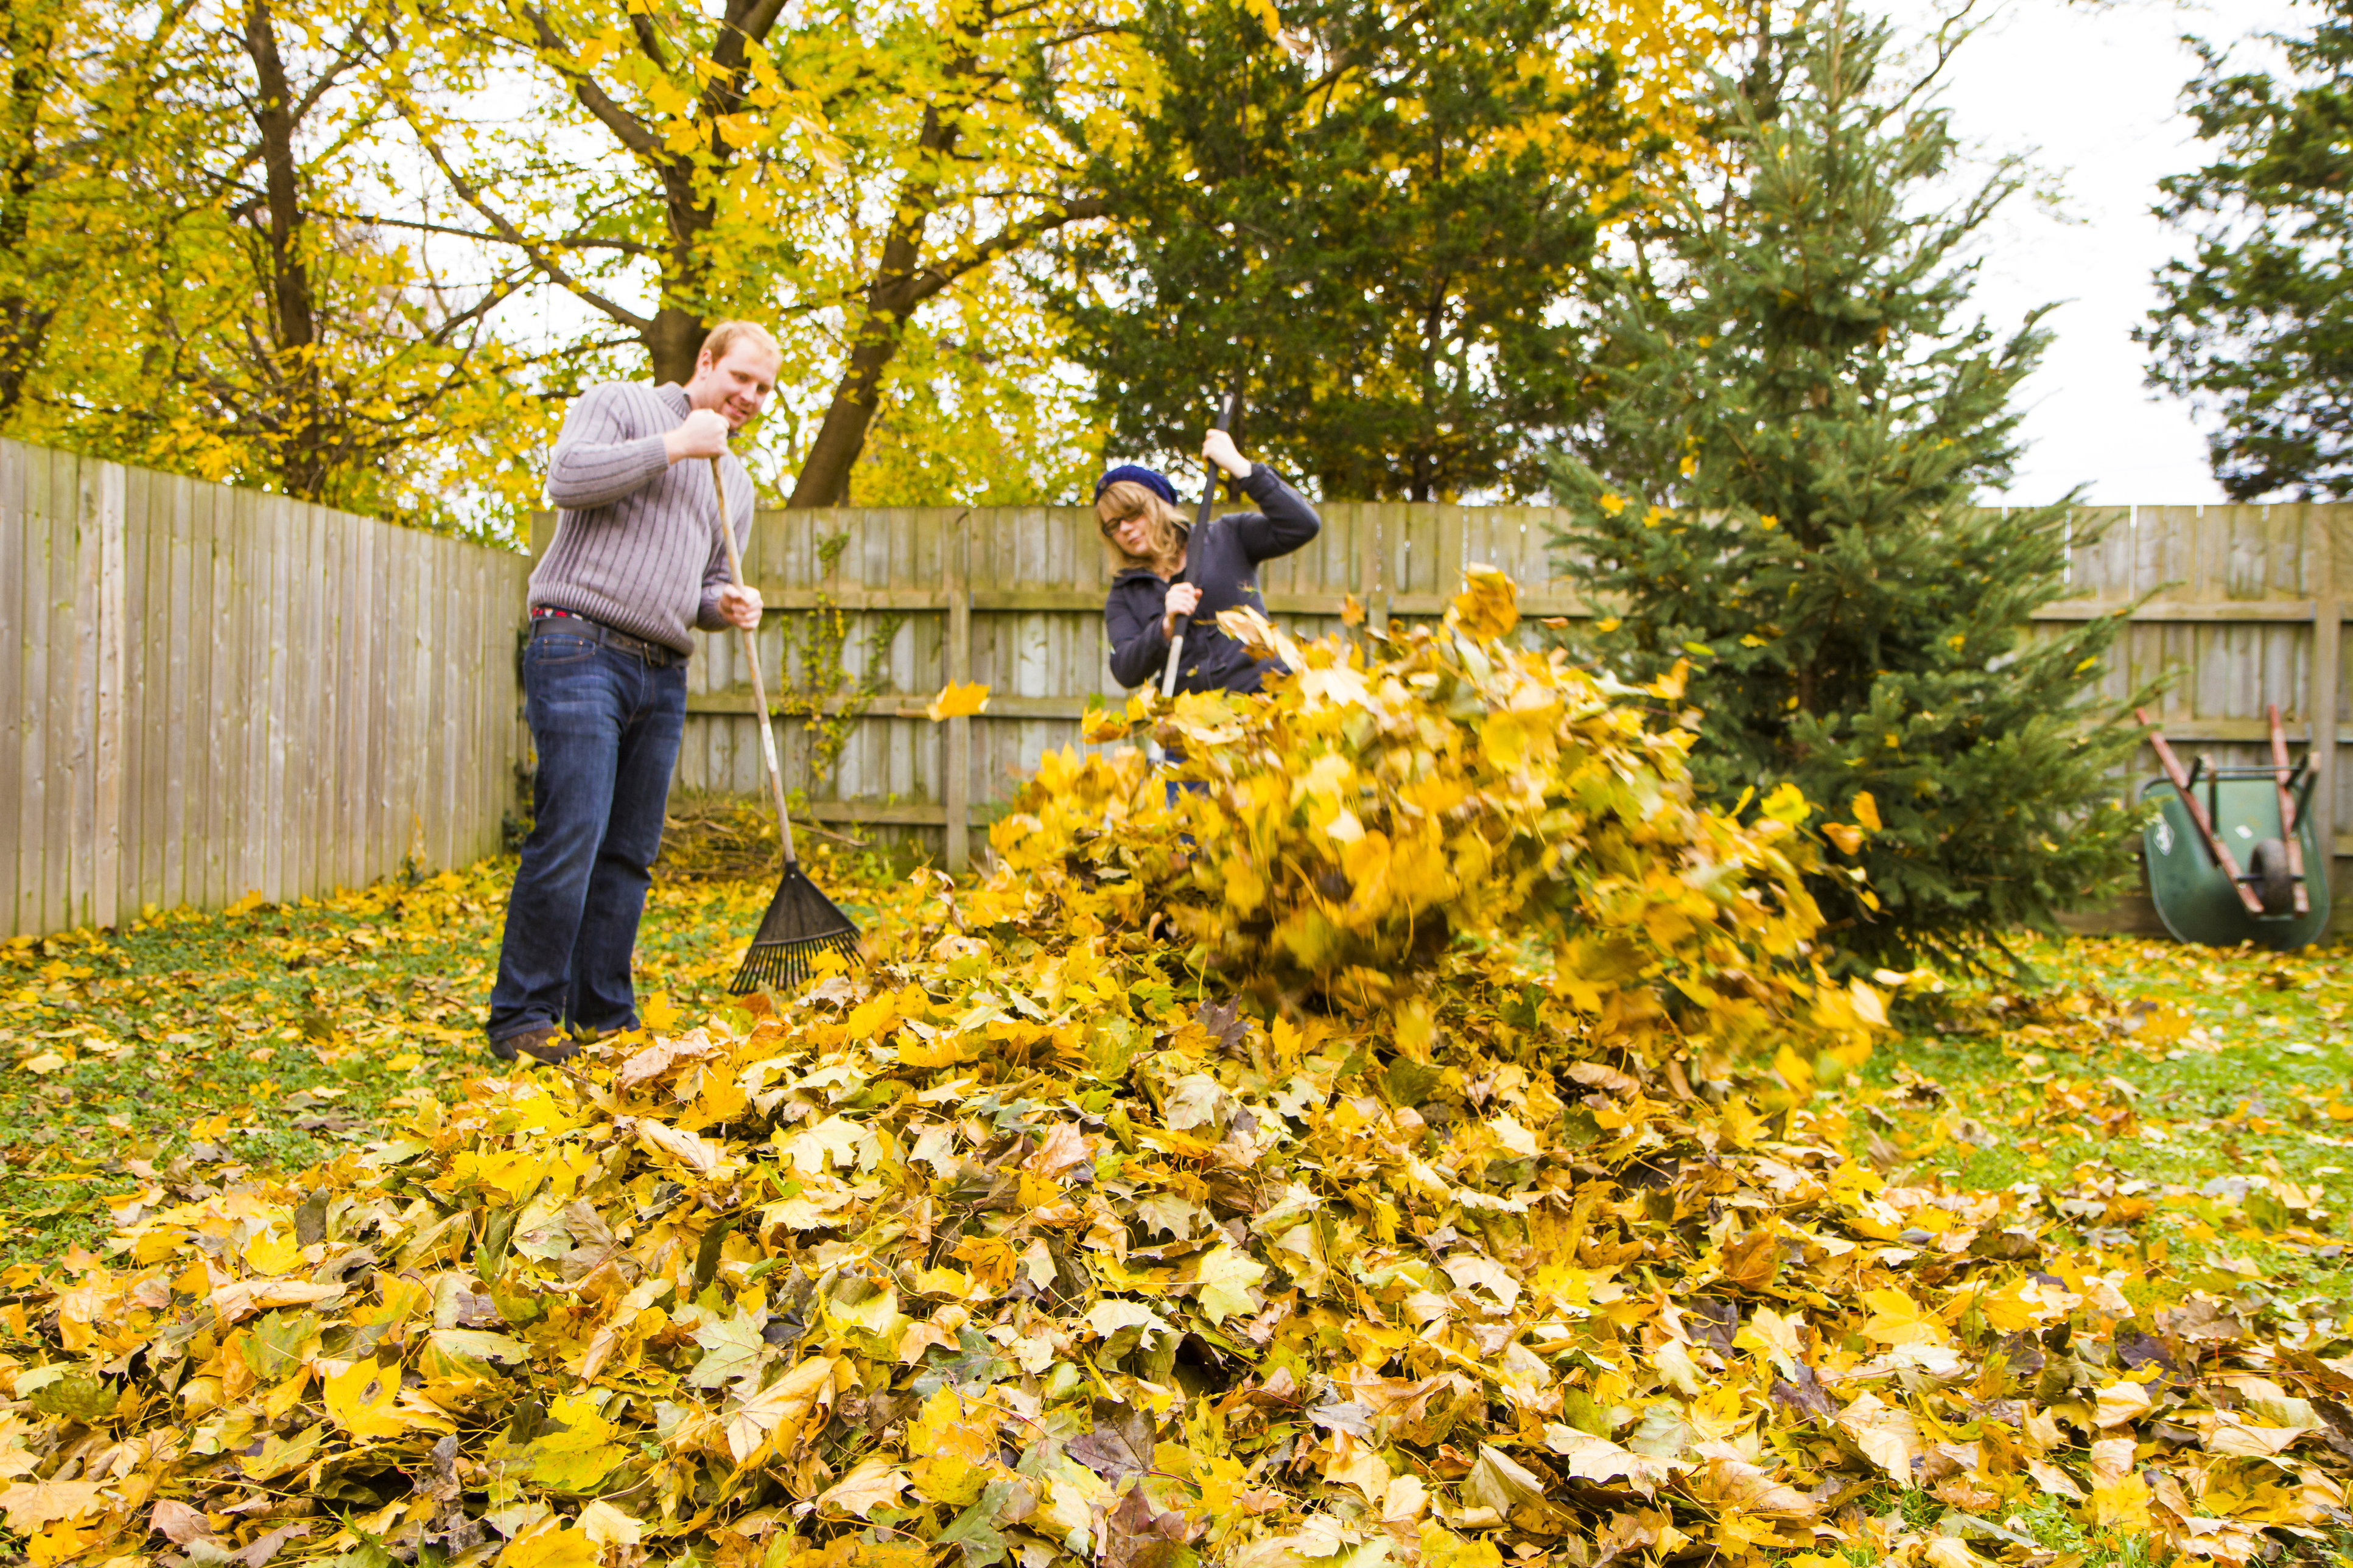 A Fall Checklist of 10 Things You Gotta Do Before Winter Sets In